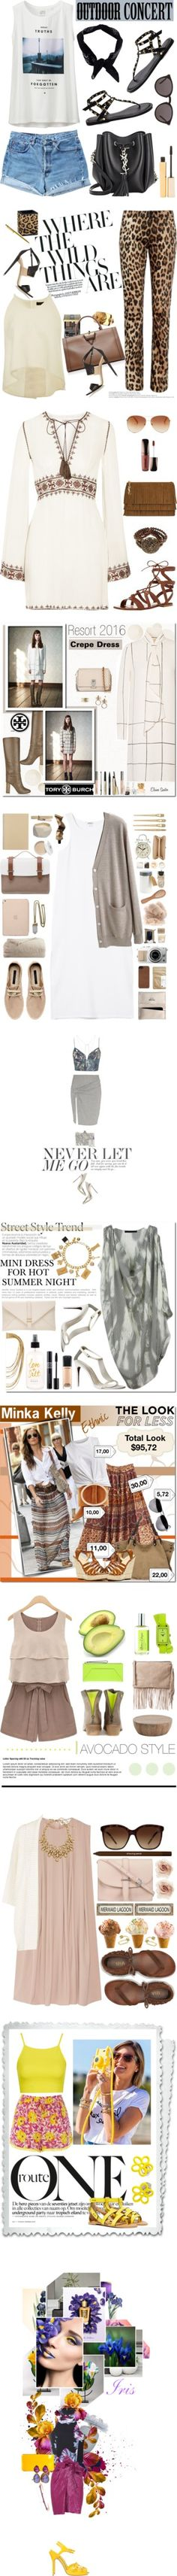 """""""Top Fashion Sets for Jul 18th, 2015"""" by polyvore ❤ liked on Polyvore"""